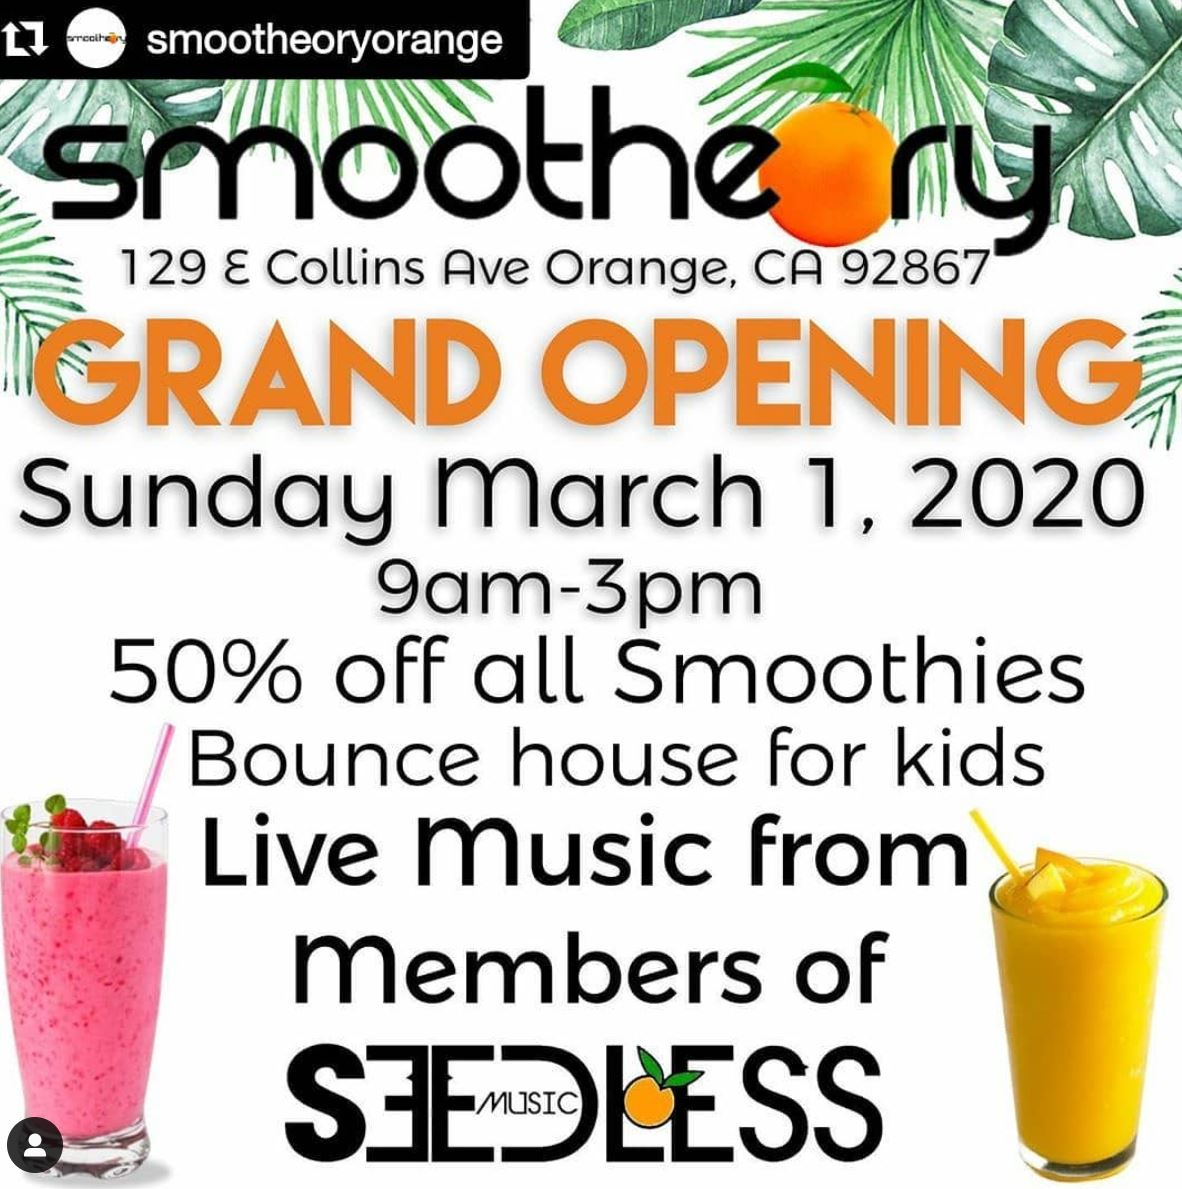 Mar. 1 | 50% Off All Smoothies @ Smootheory - Orange